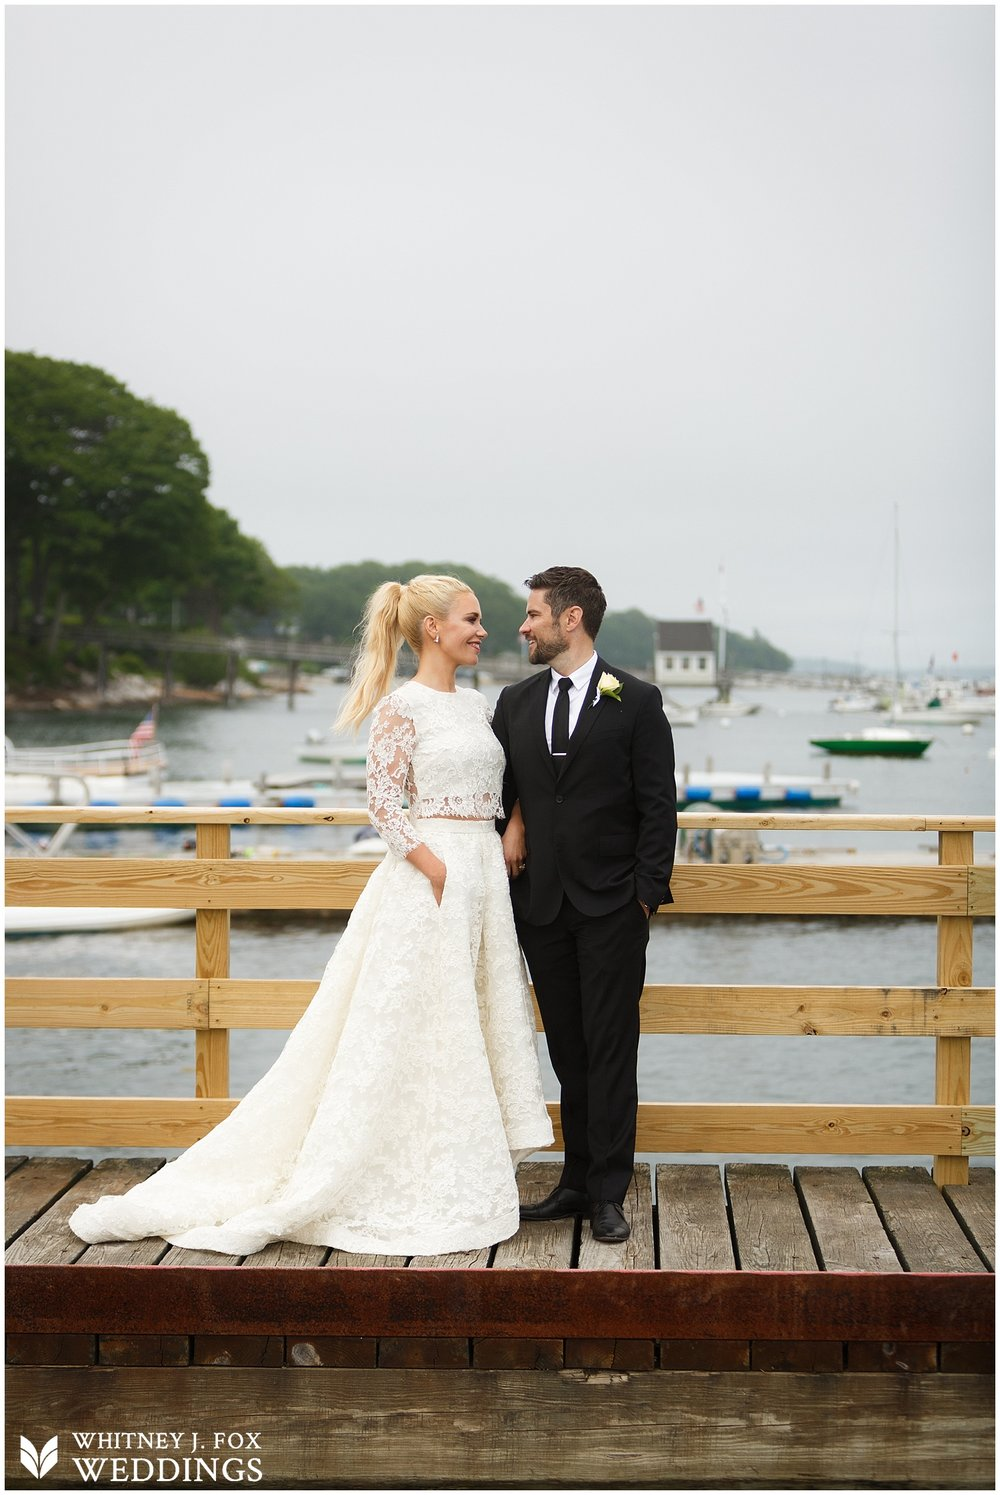 formal_seaside_summer_wedding_dockside_grill_falmouth_maine_photographer_whitney_j_fox_weddings_51.JPG